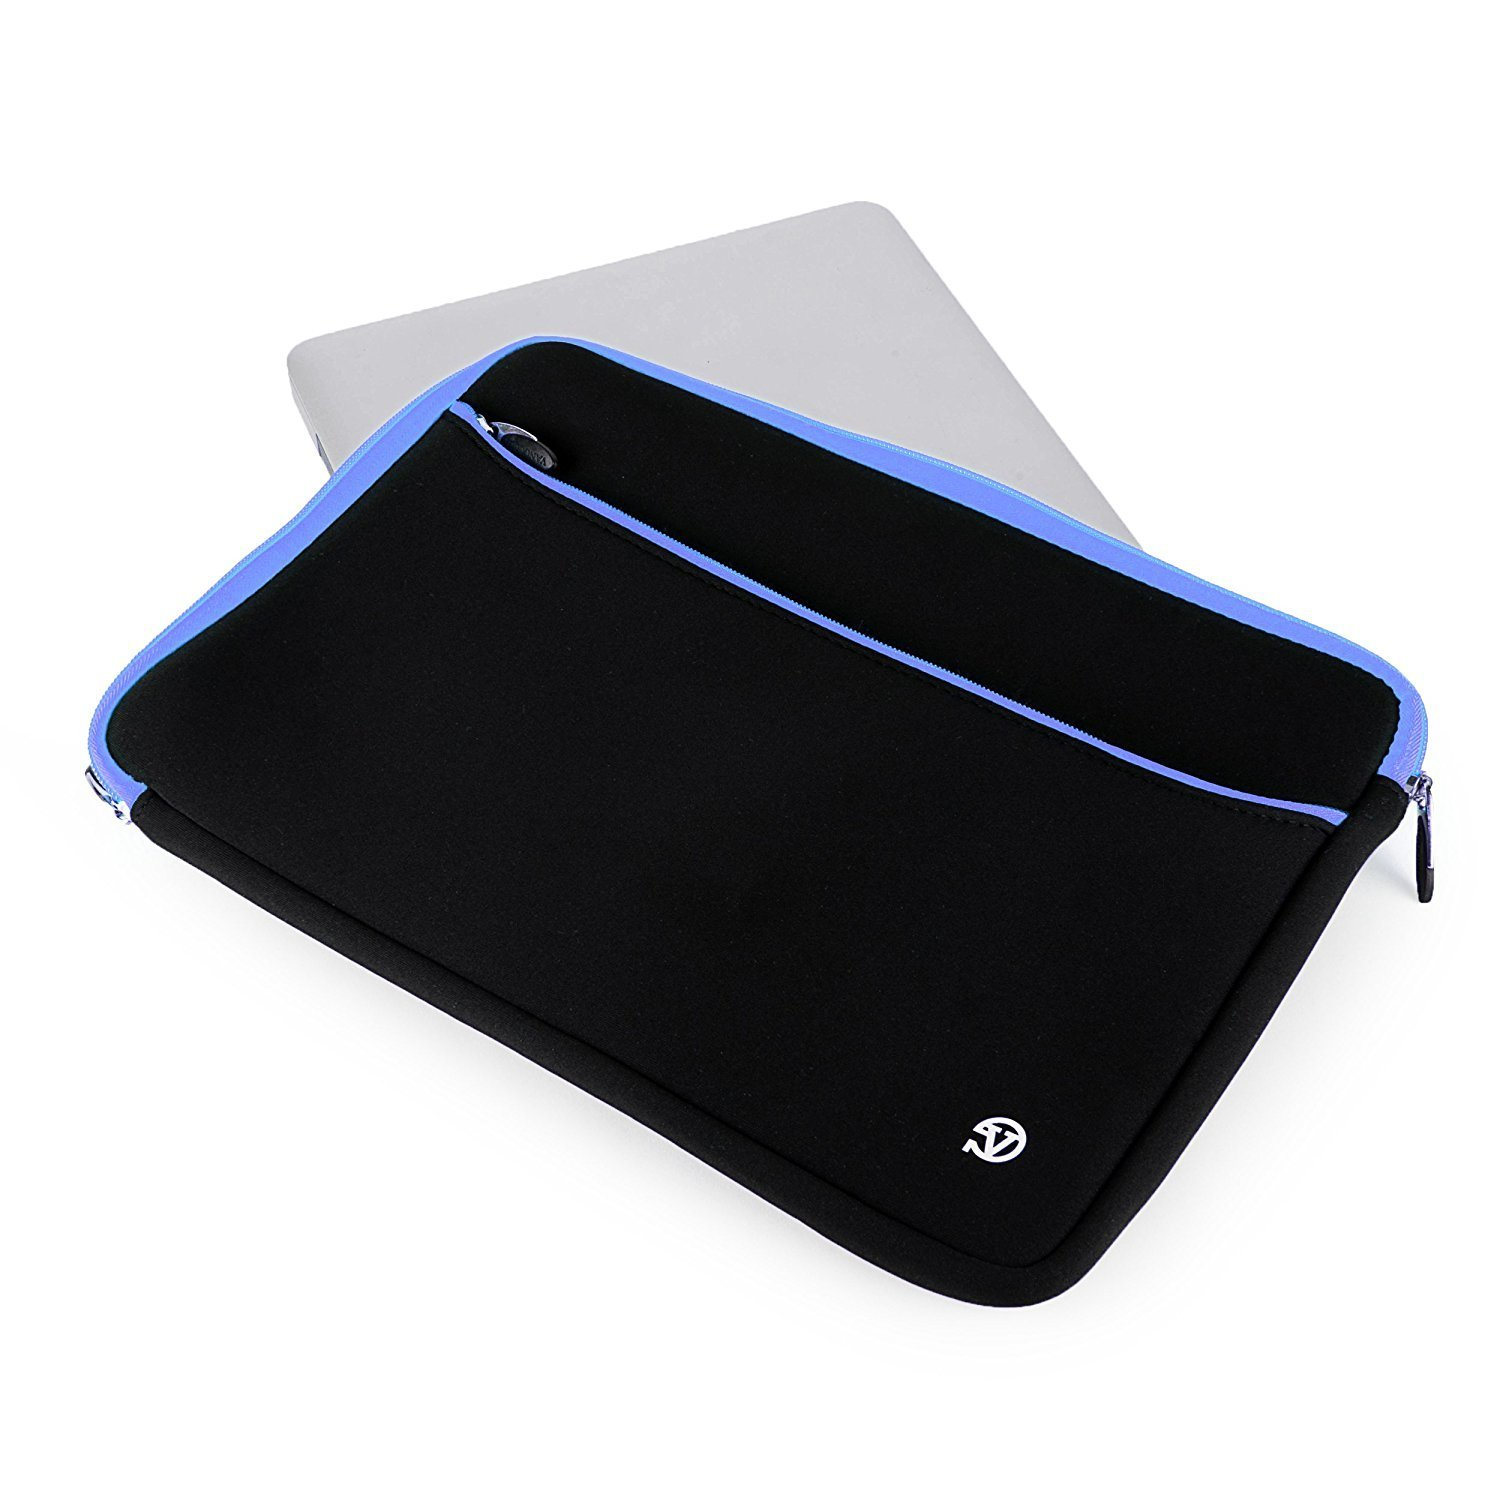 Travel Laptop Sleeve Bag Tablet Pouch Case for Asus ROG / X / Dell Alienware / Inspiron 17 / Inspiron 17 5000 / Acer Aspire / Chromebook 15